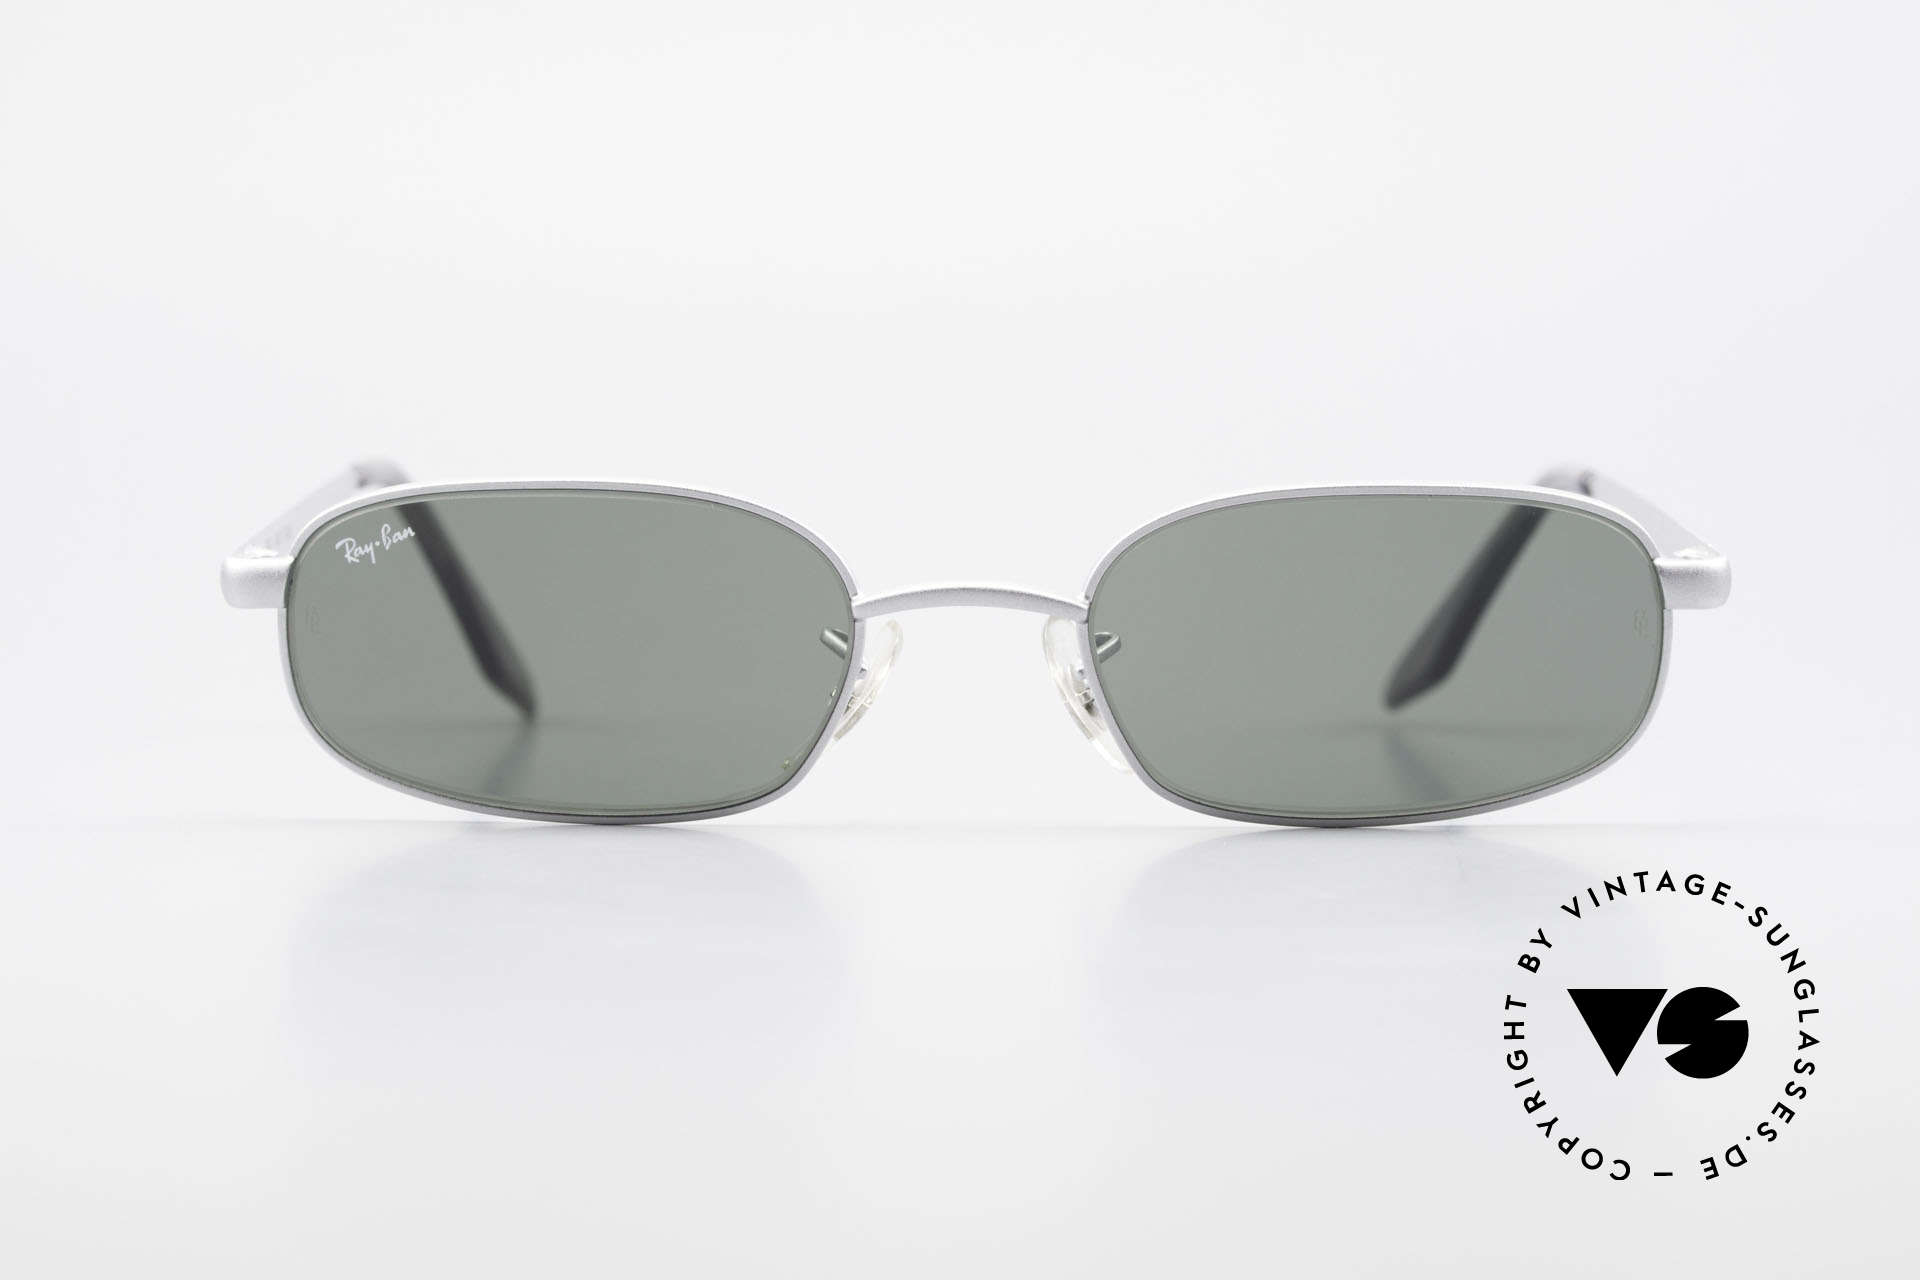 Ray Ban Sidestreet Sidewalk Rectangle Ray Ban USA Shades, one of the last models made by Bausch&Lomb, U.S.A., Made for Men